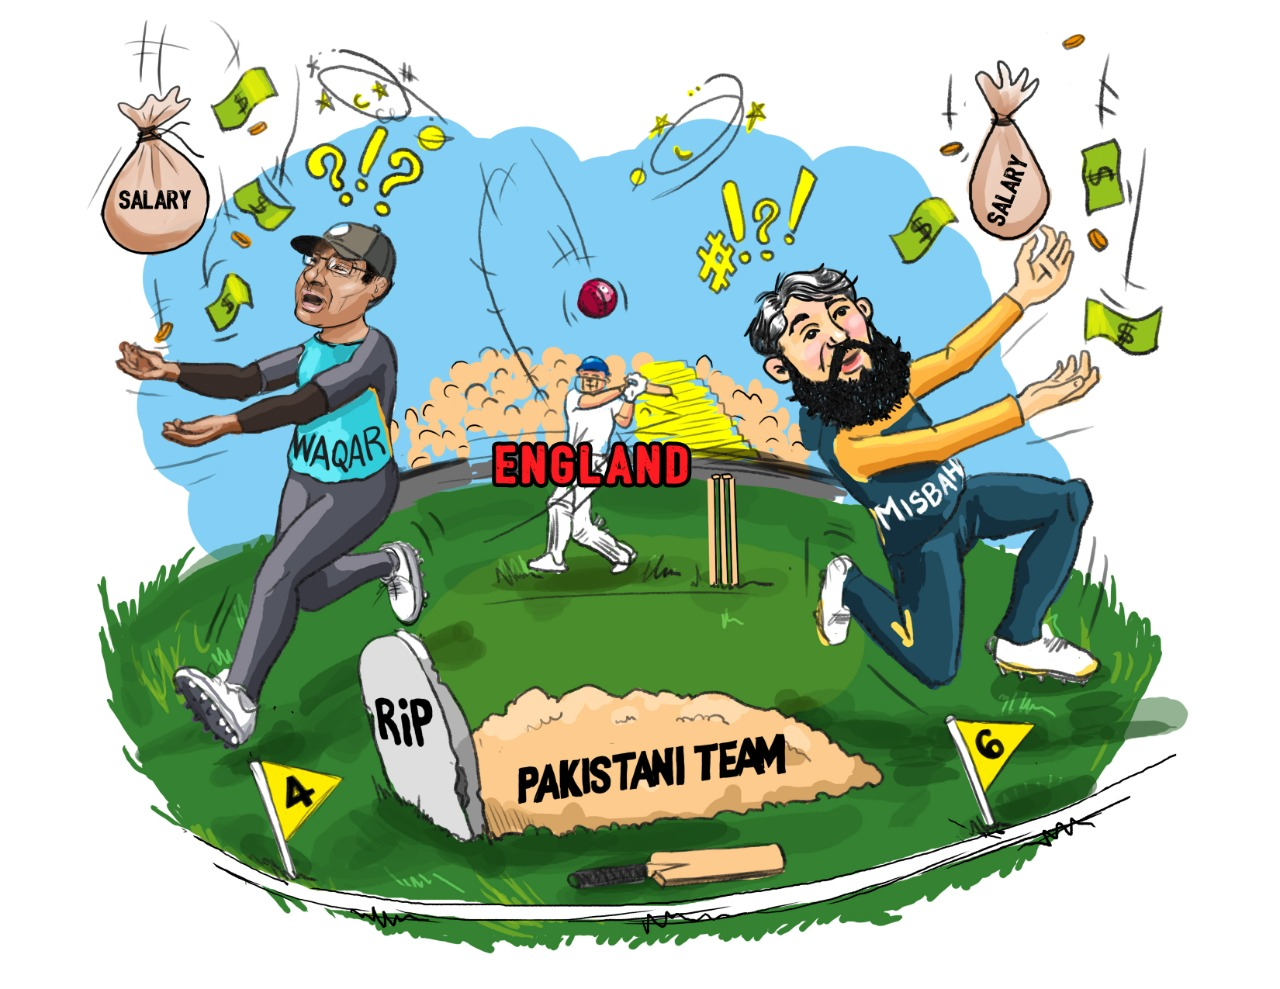 Creative Art Director Sohail Inayat, hits it out of the park with his latest cartoon on the Misbah-Waqar condundrum